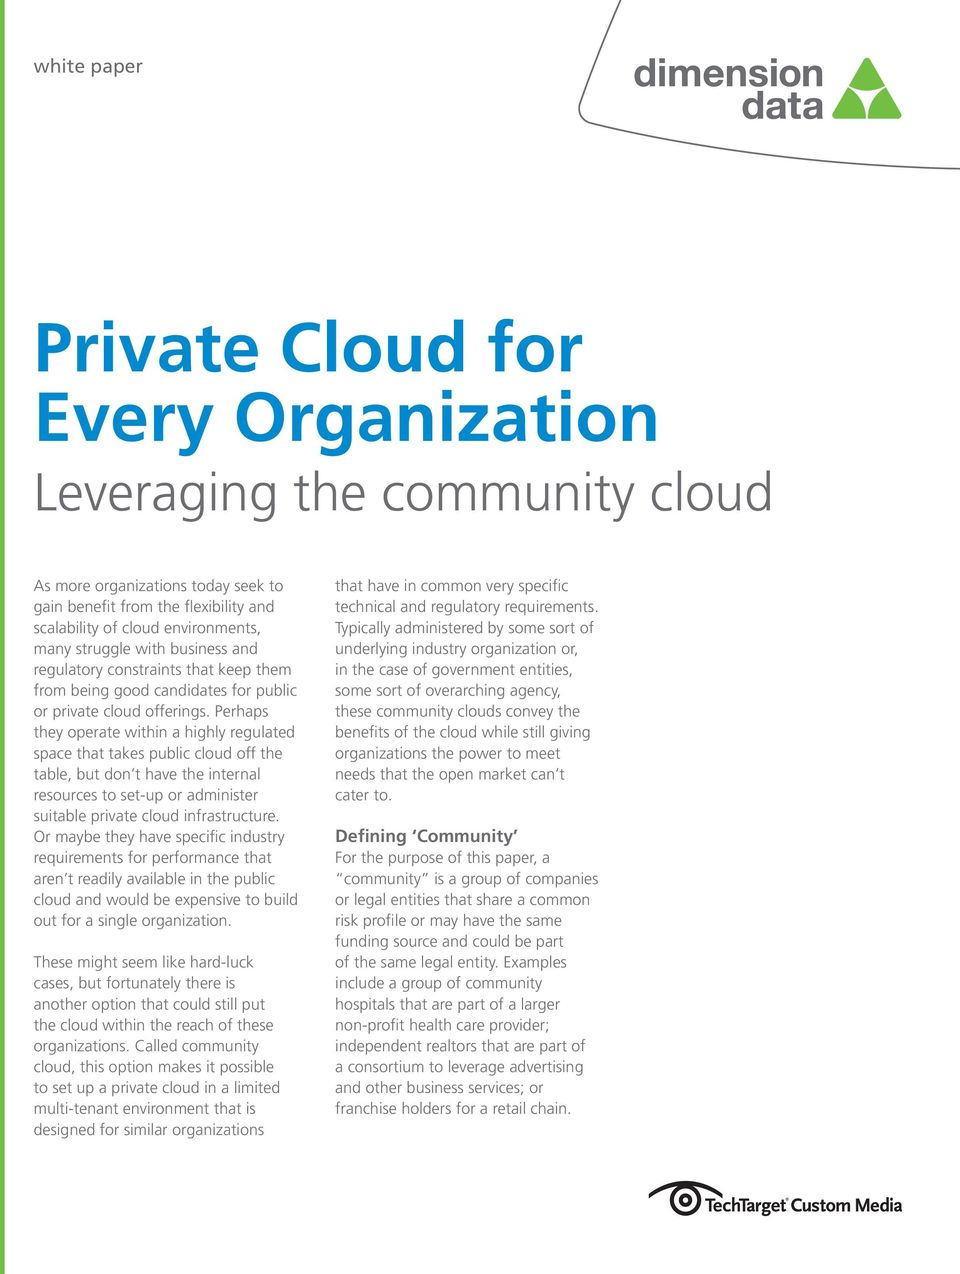 Perhaps they operate within a highly regulated space that takes public cloud off the table, but don t have the internal resources to set-up or administer suitable private cloud infrastructure.